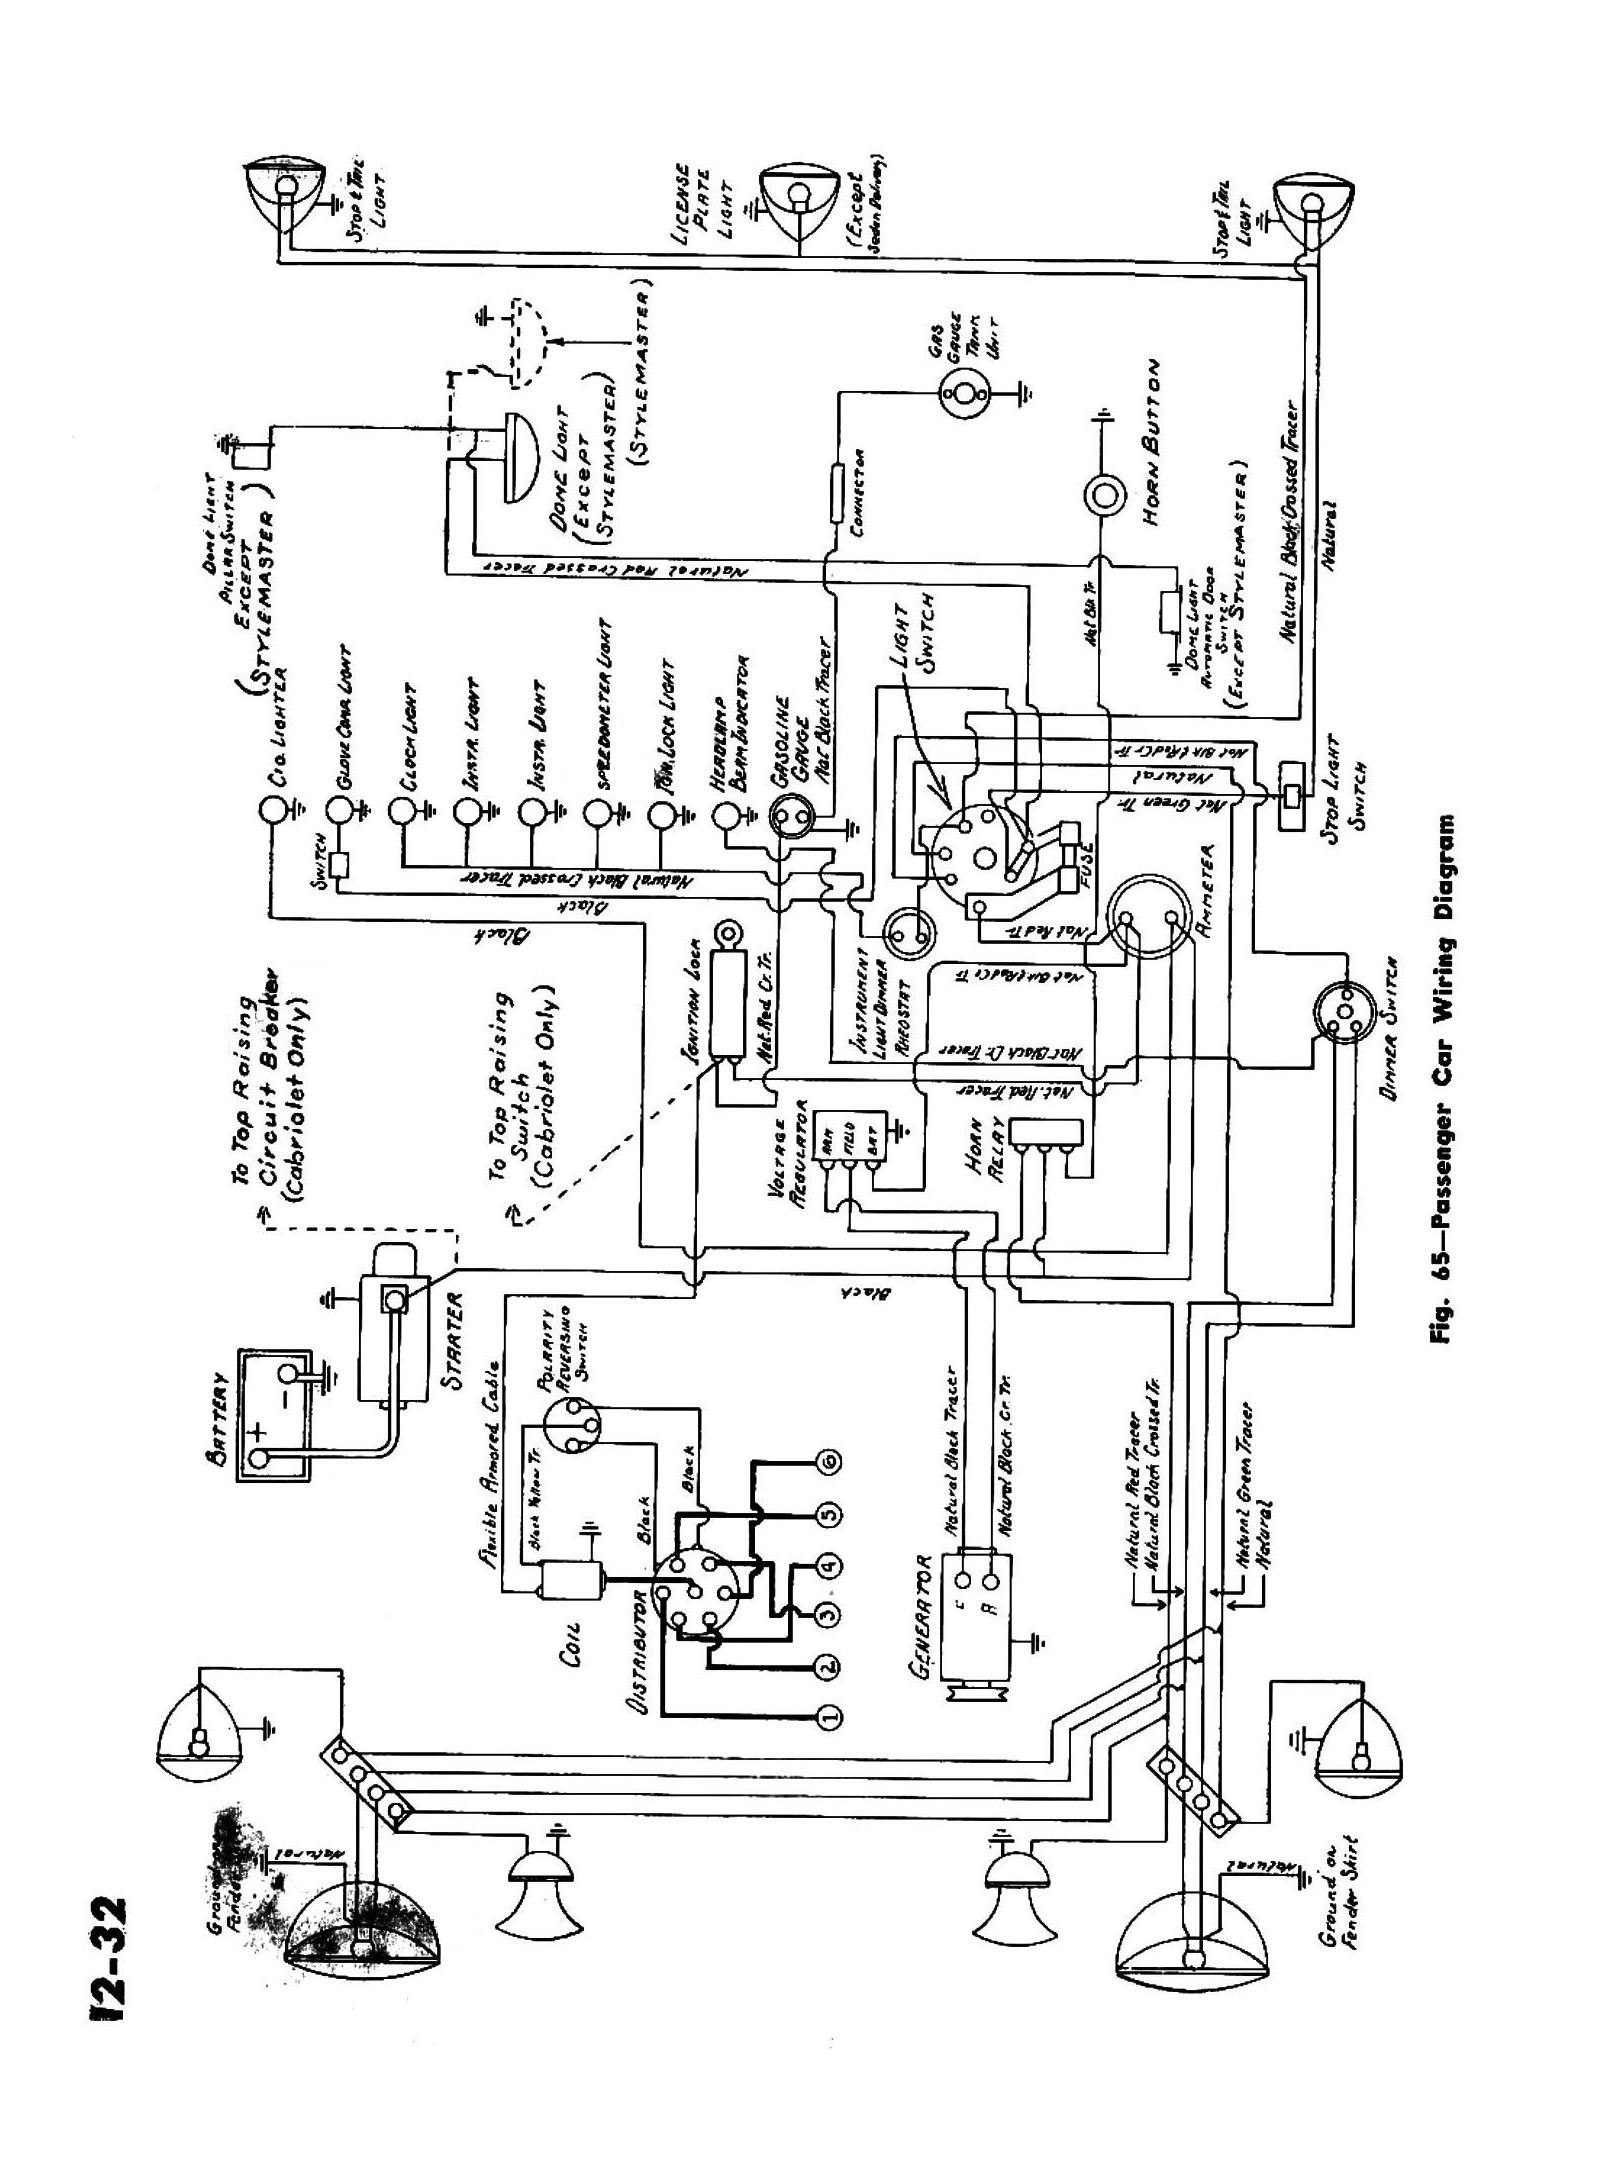 electrical wiring diagram car official site wiring diagrams